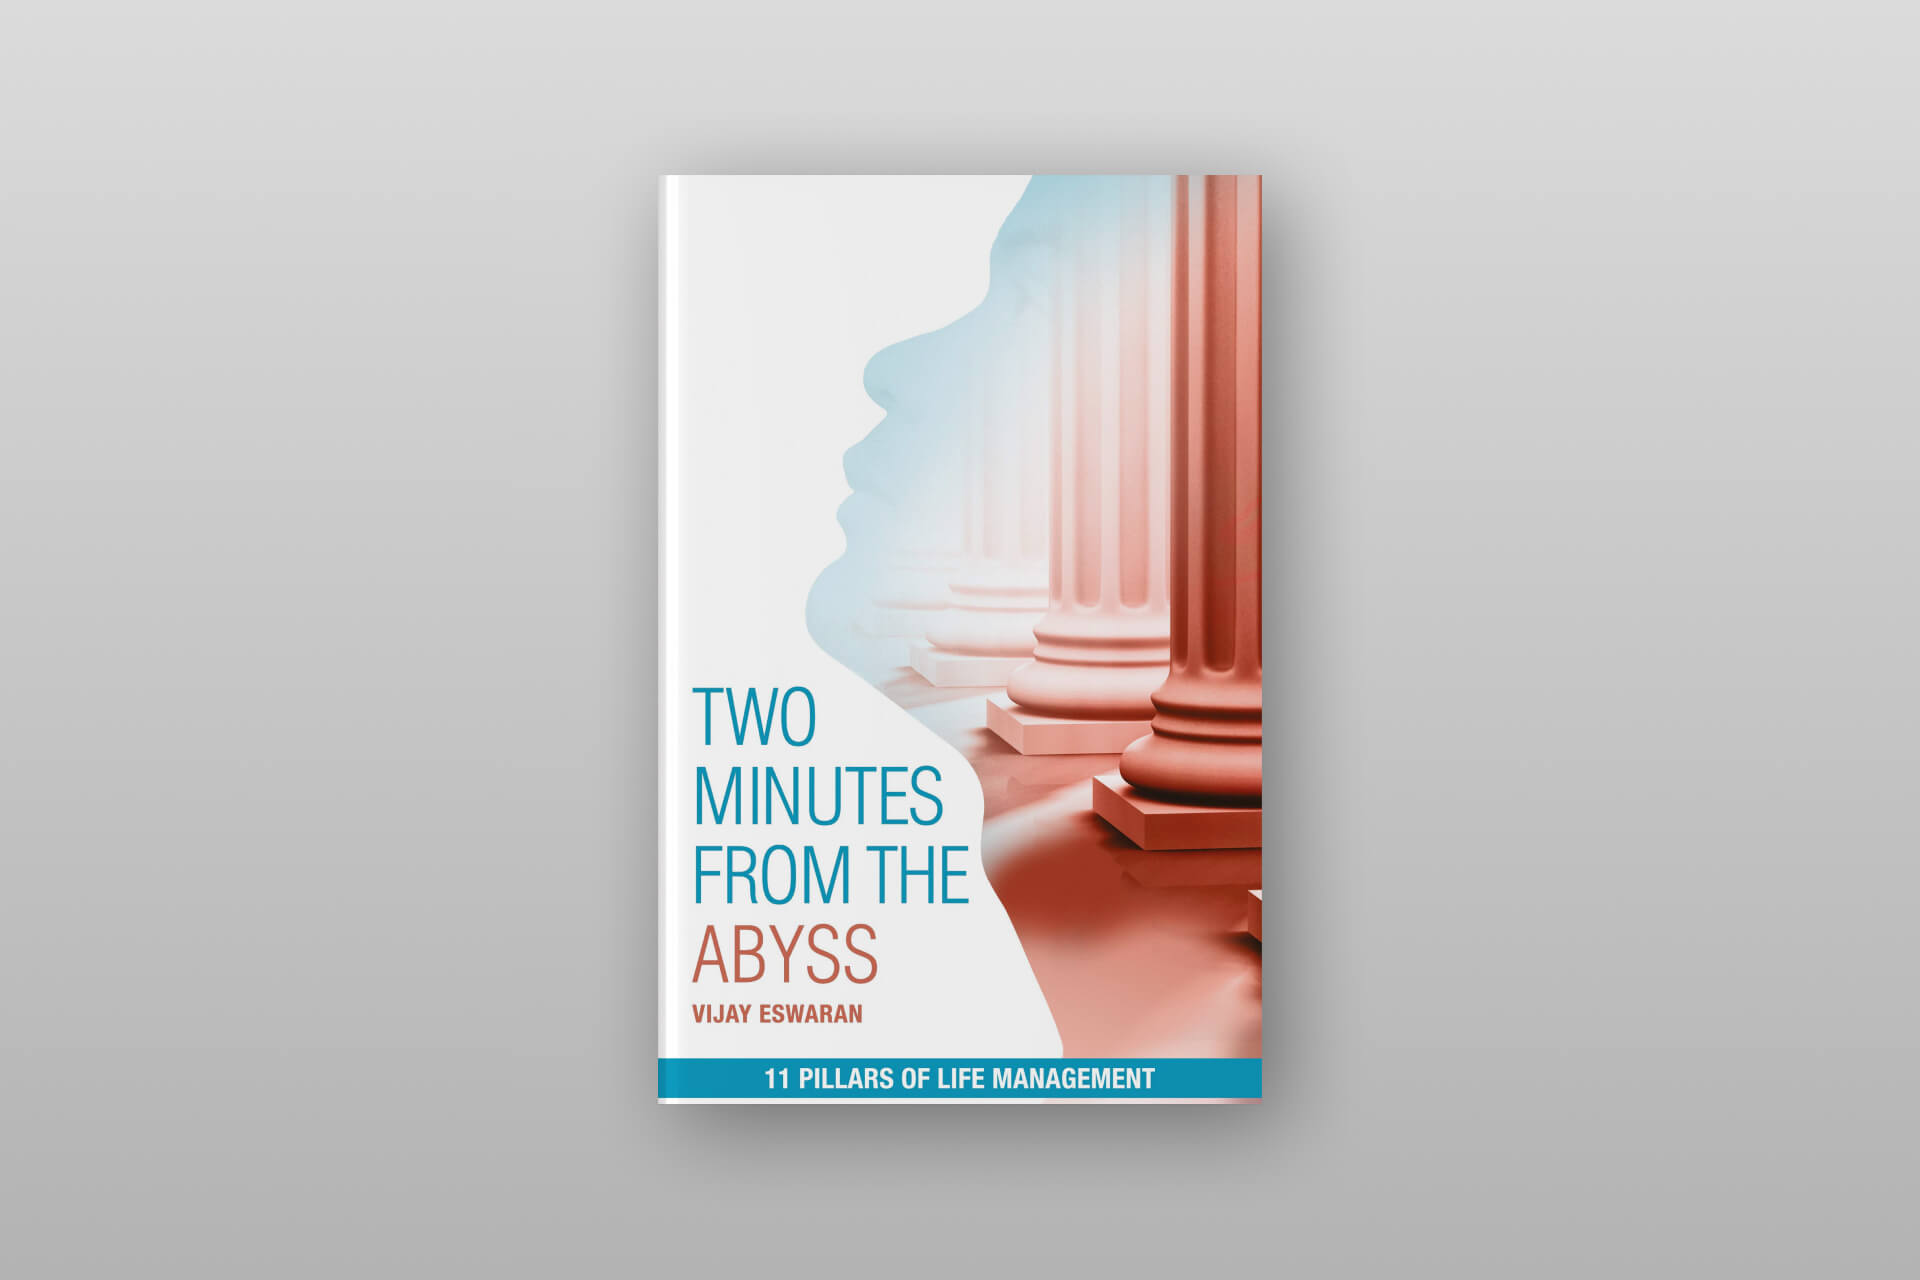 Two Minutes from the Abyss by Vijay Eswaran